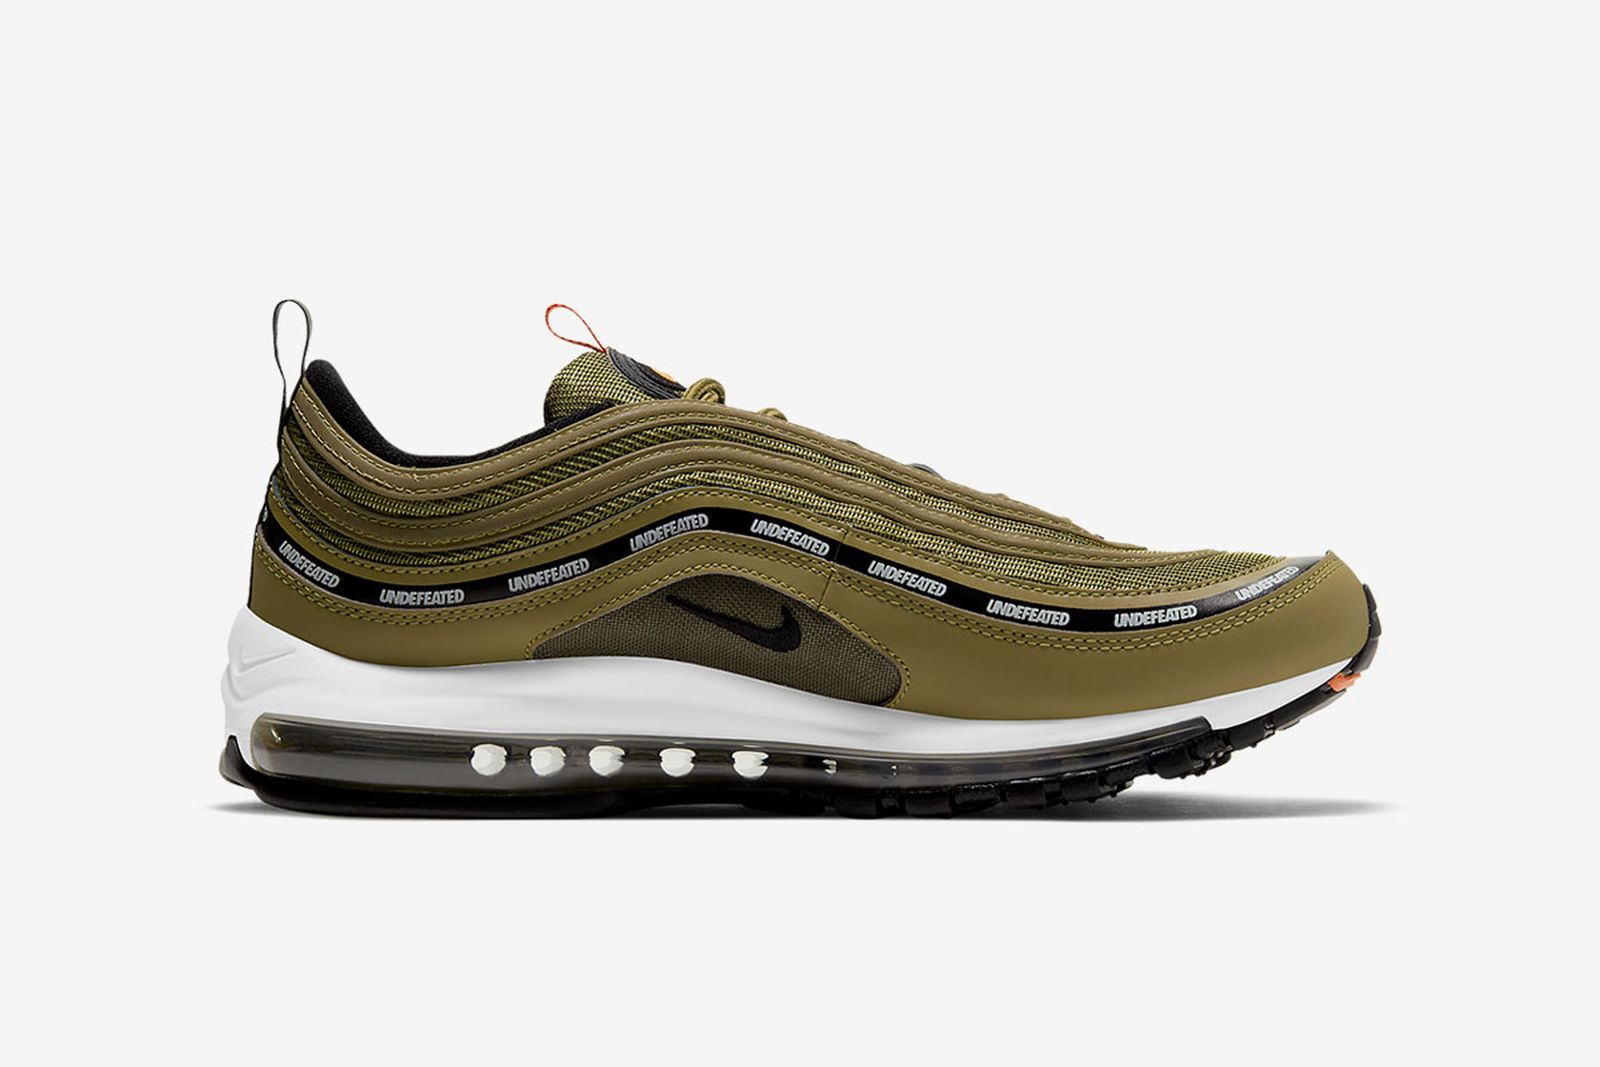 undefeated-nike-air-max-97-release-date-price-02